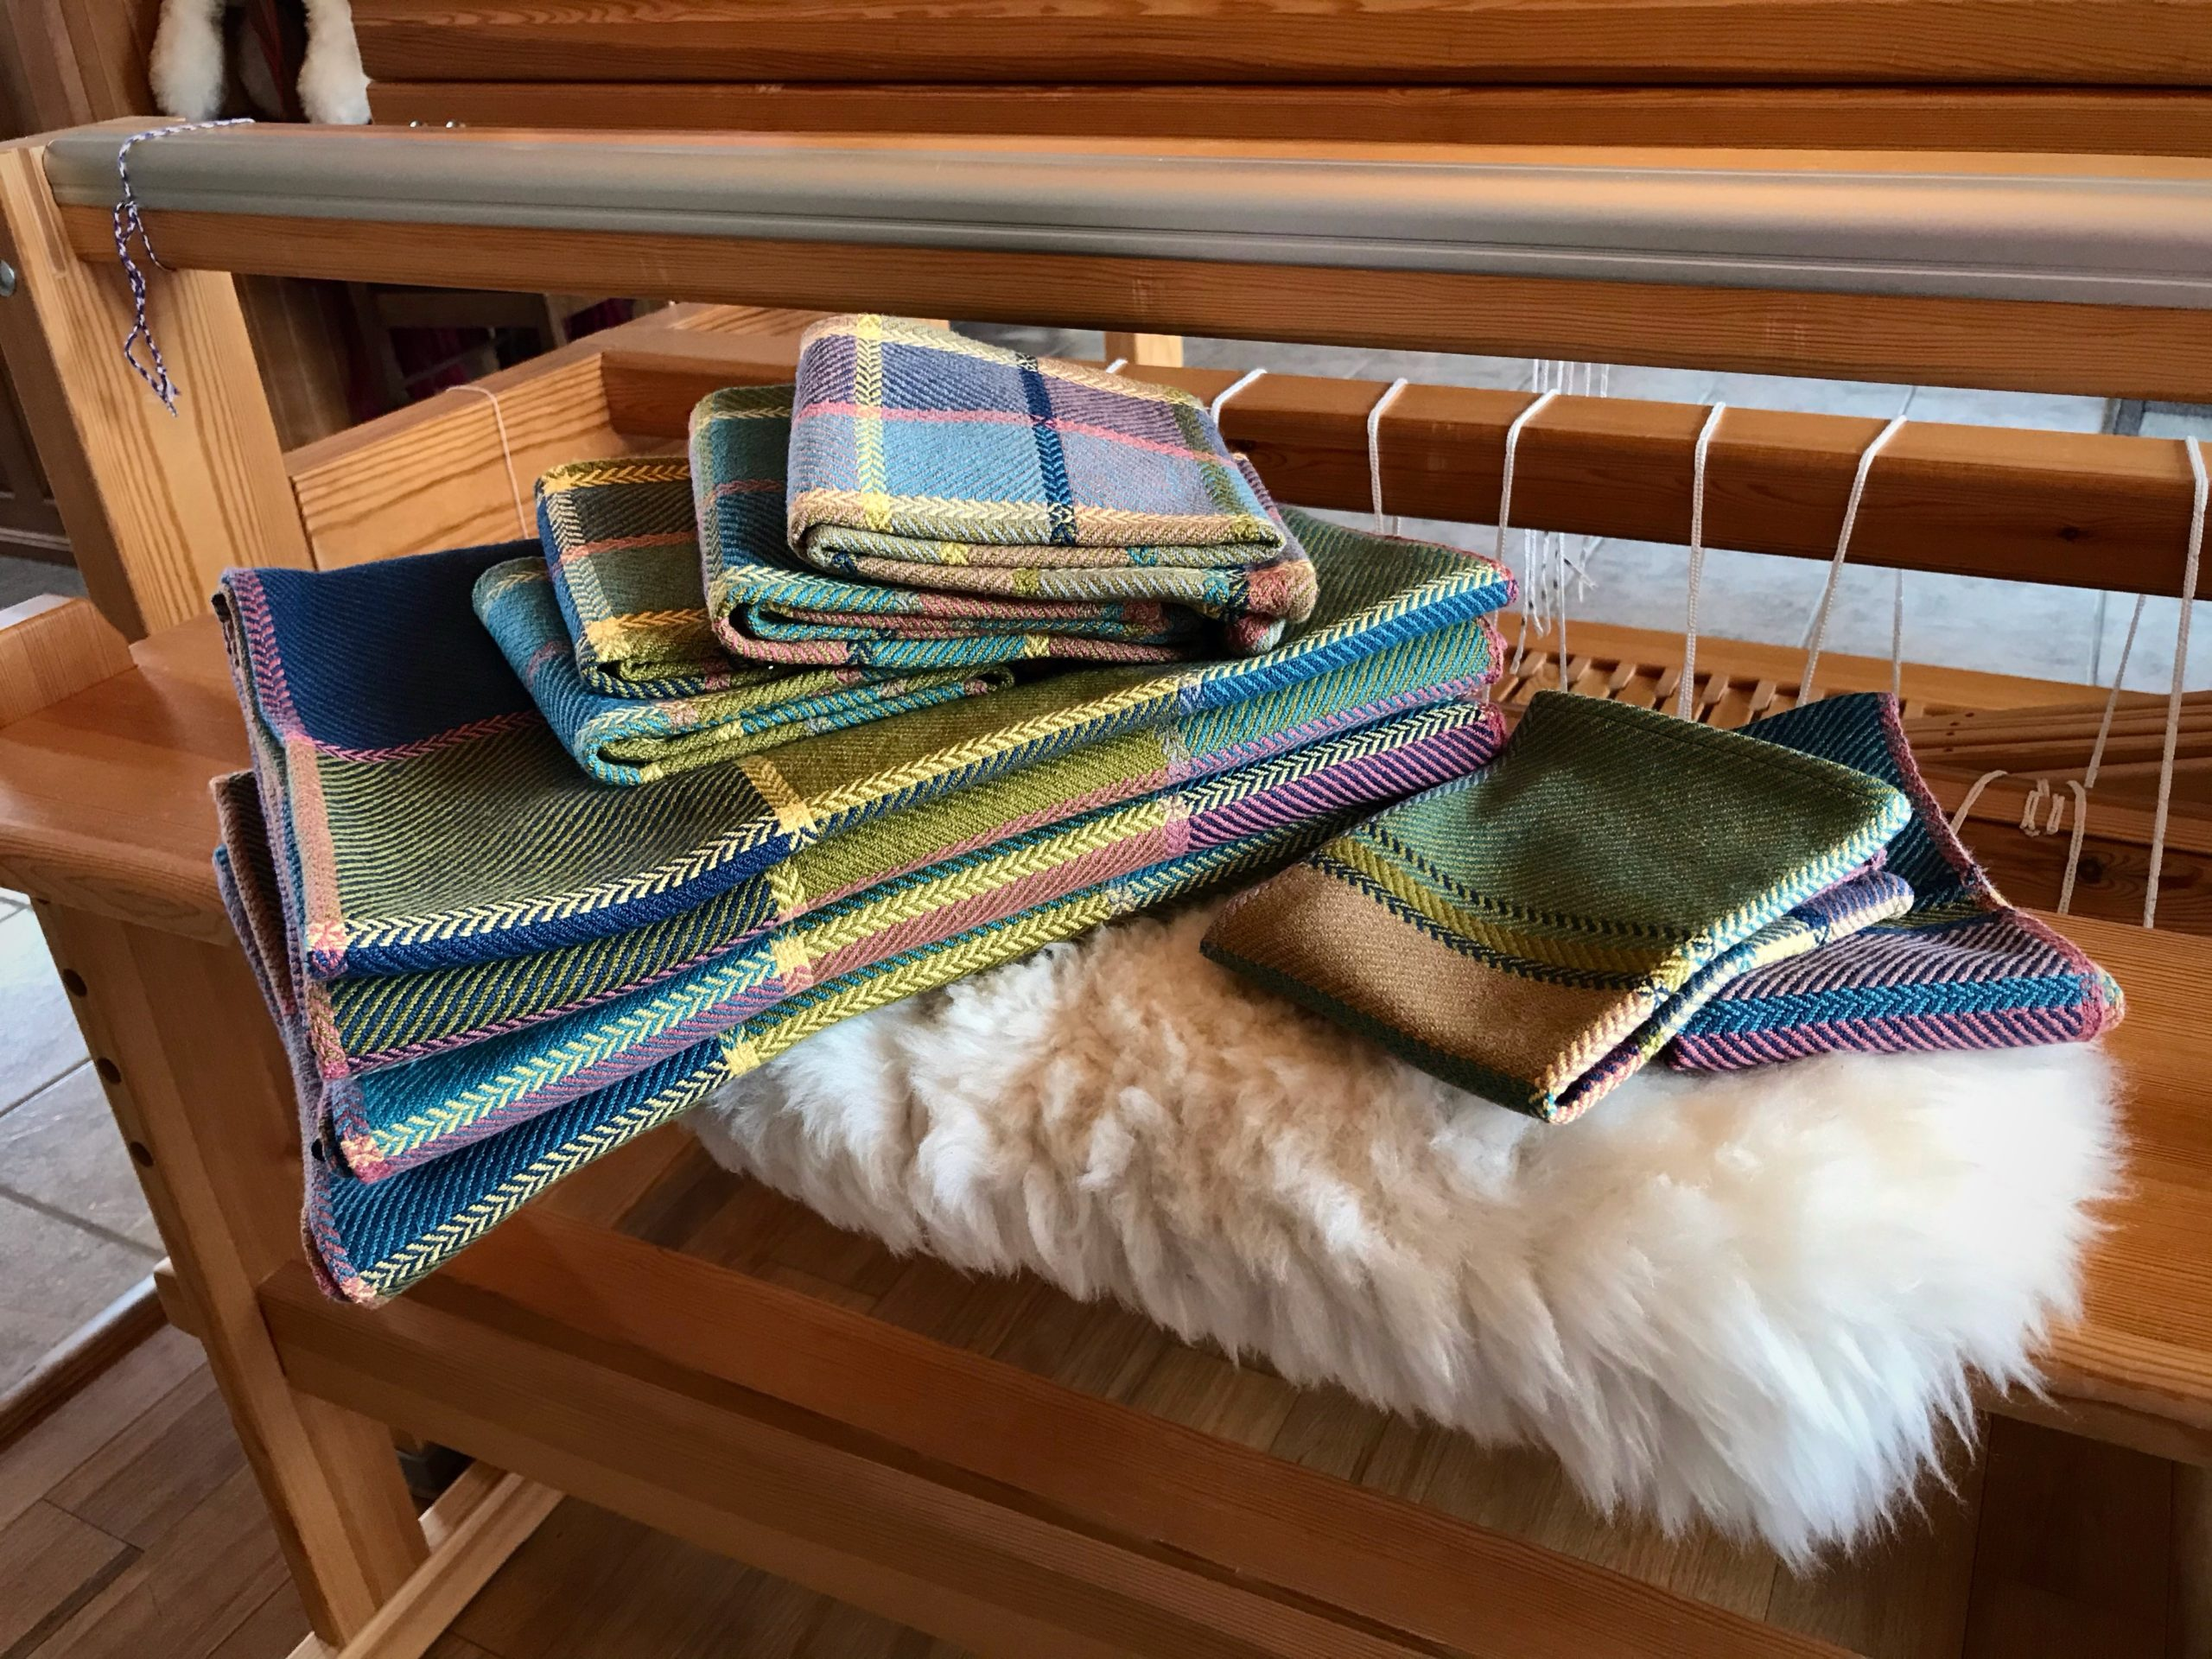 Cottolin bath set. Handwoven bath towels, hand towels, wash cloths.